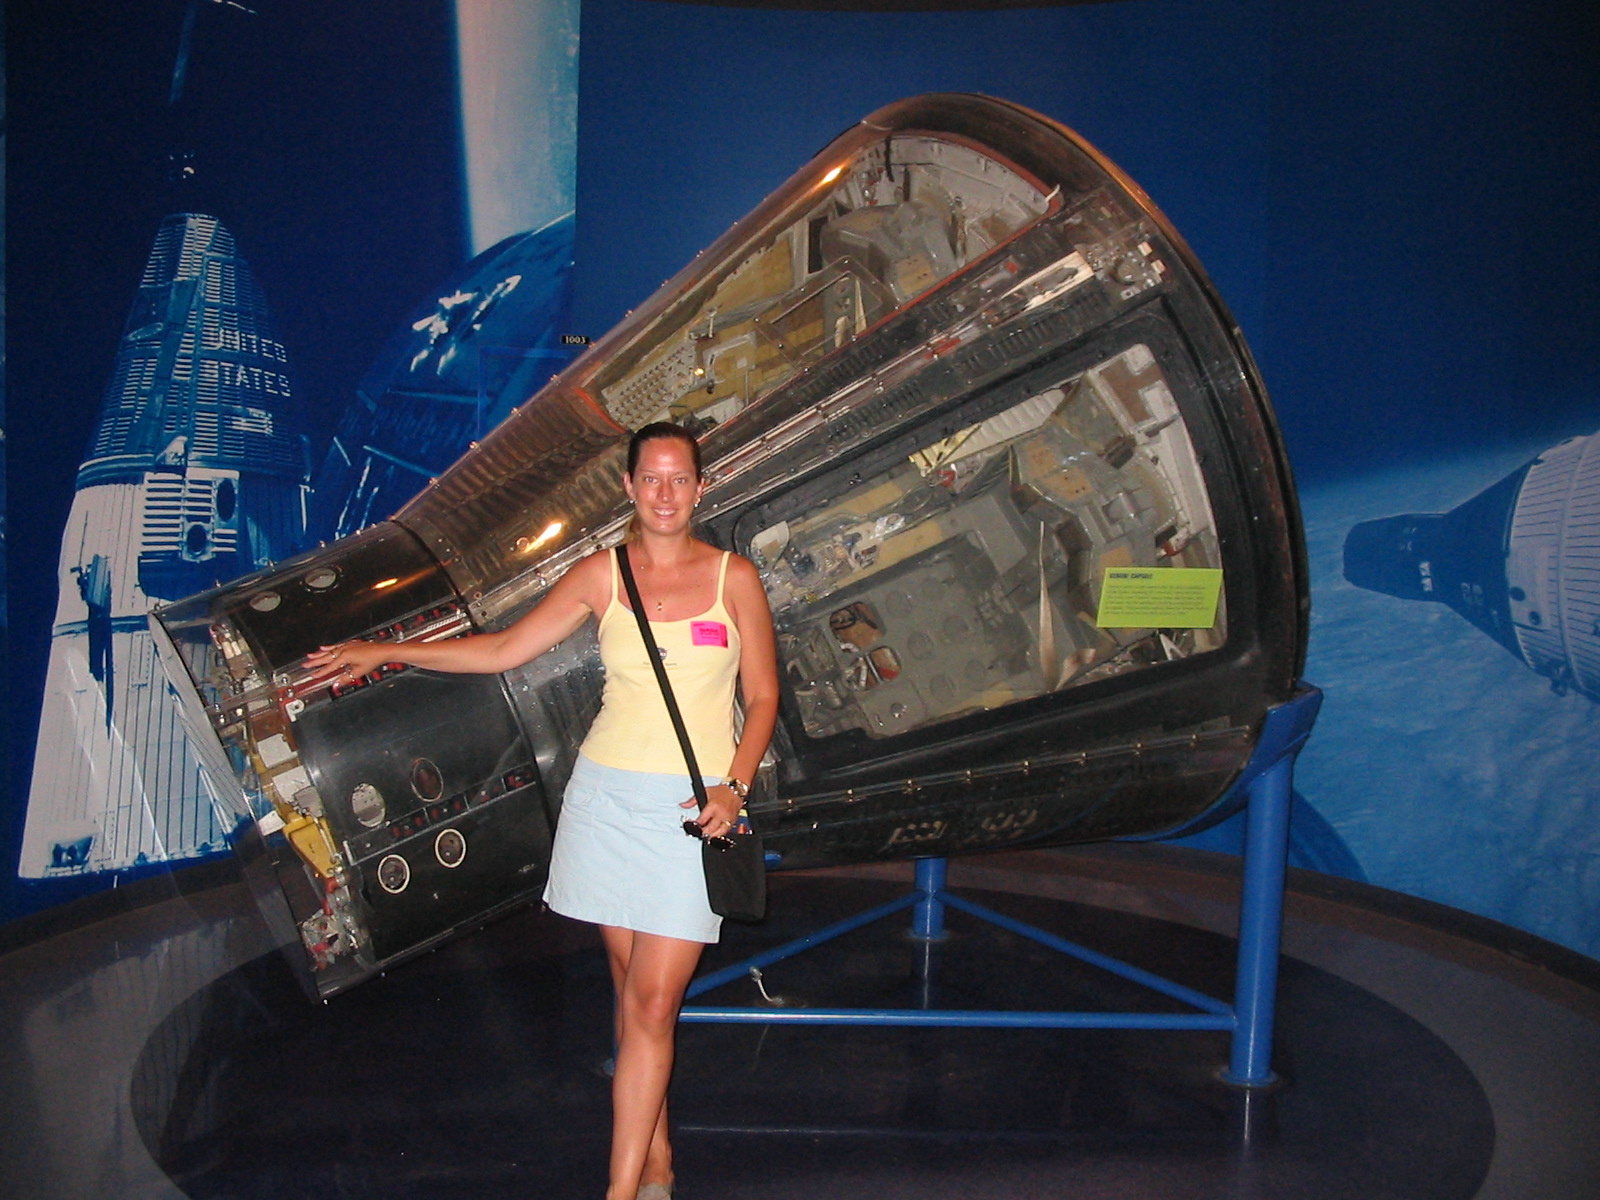 Gemini 9 Spacecraft (page 3) - Pics about space